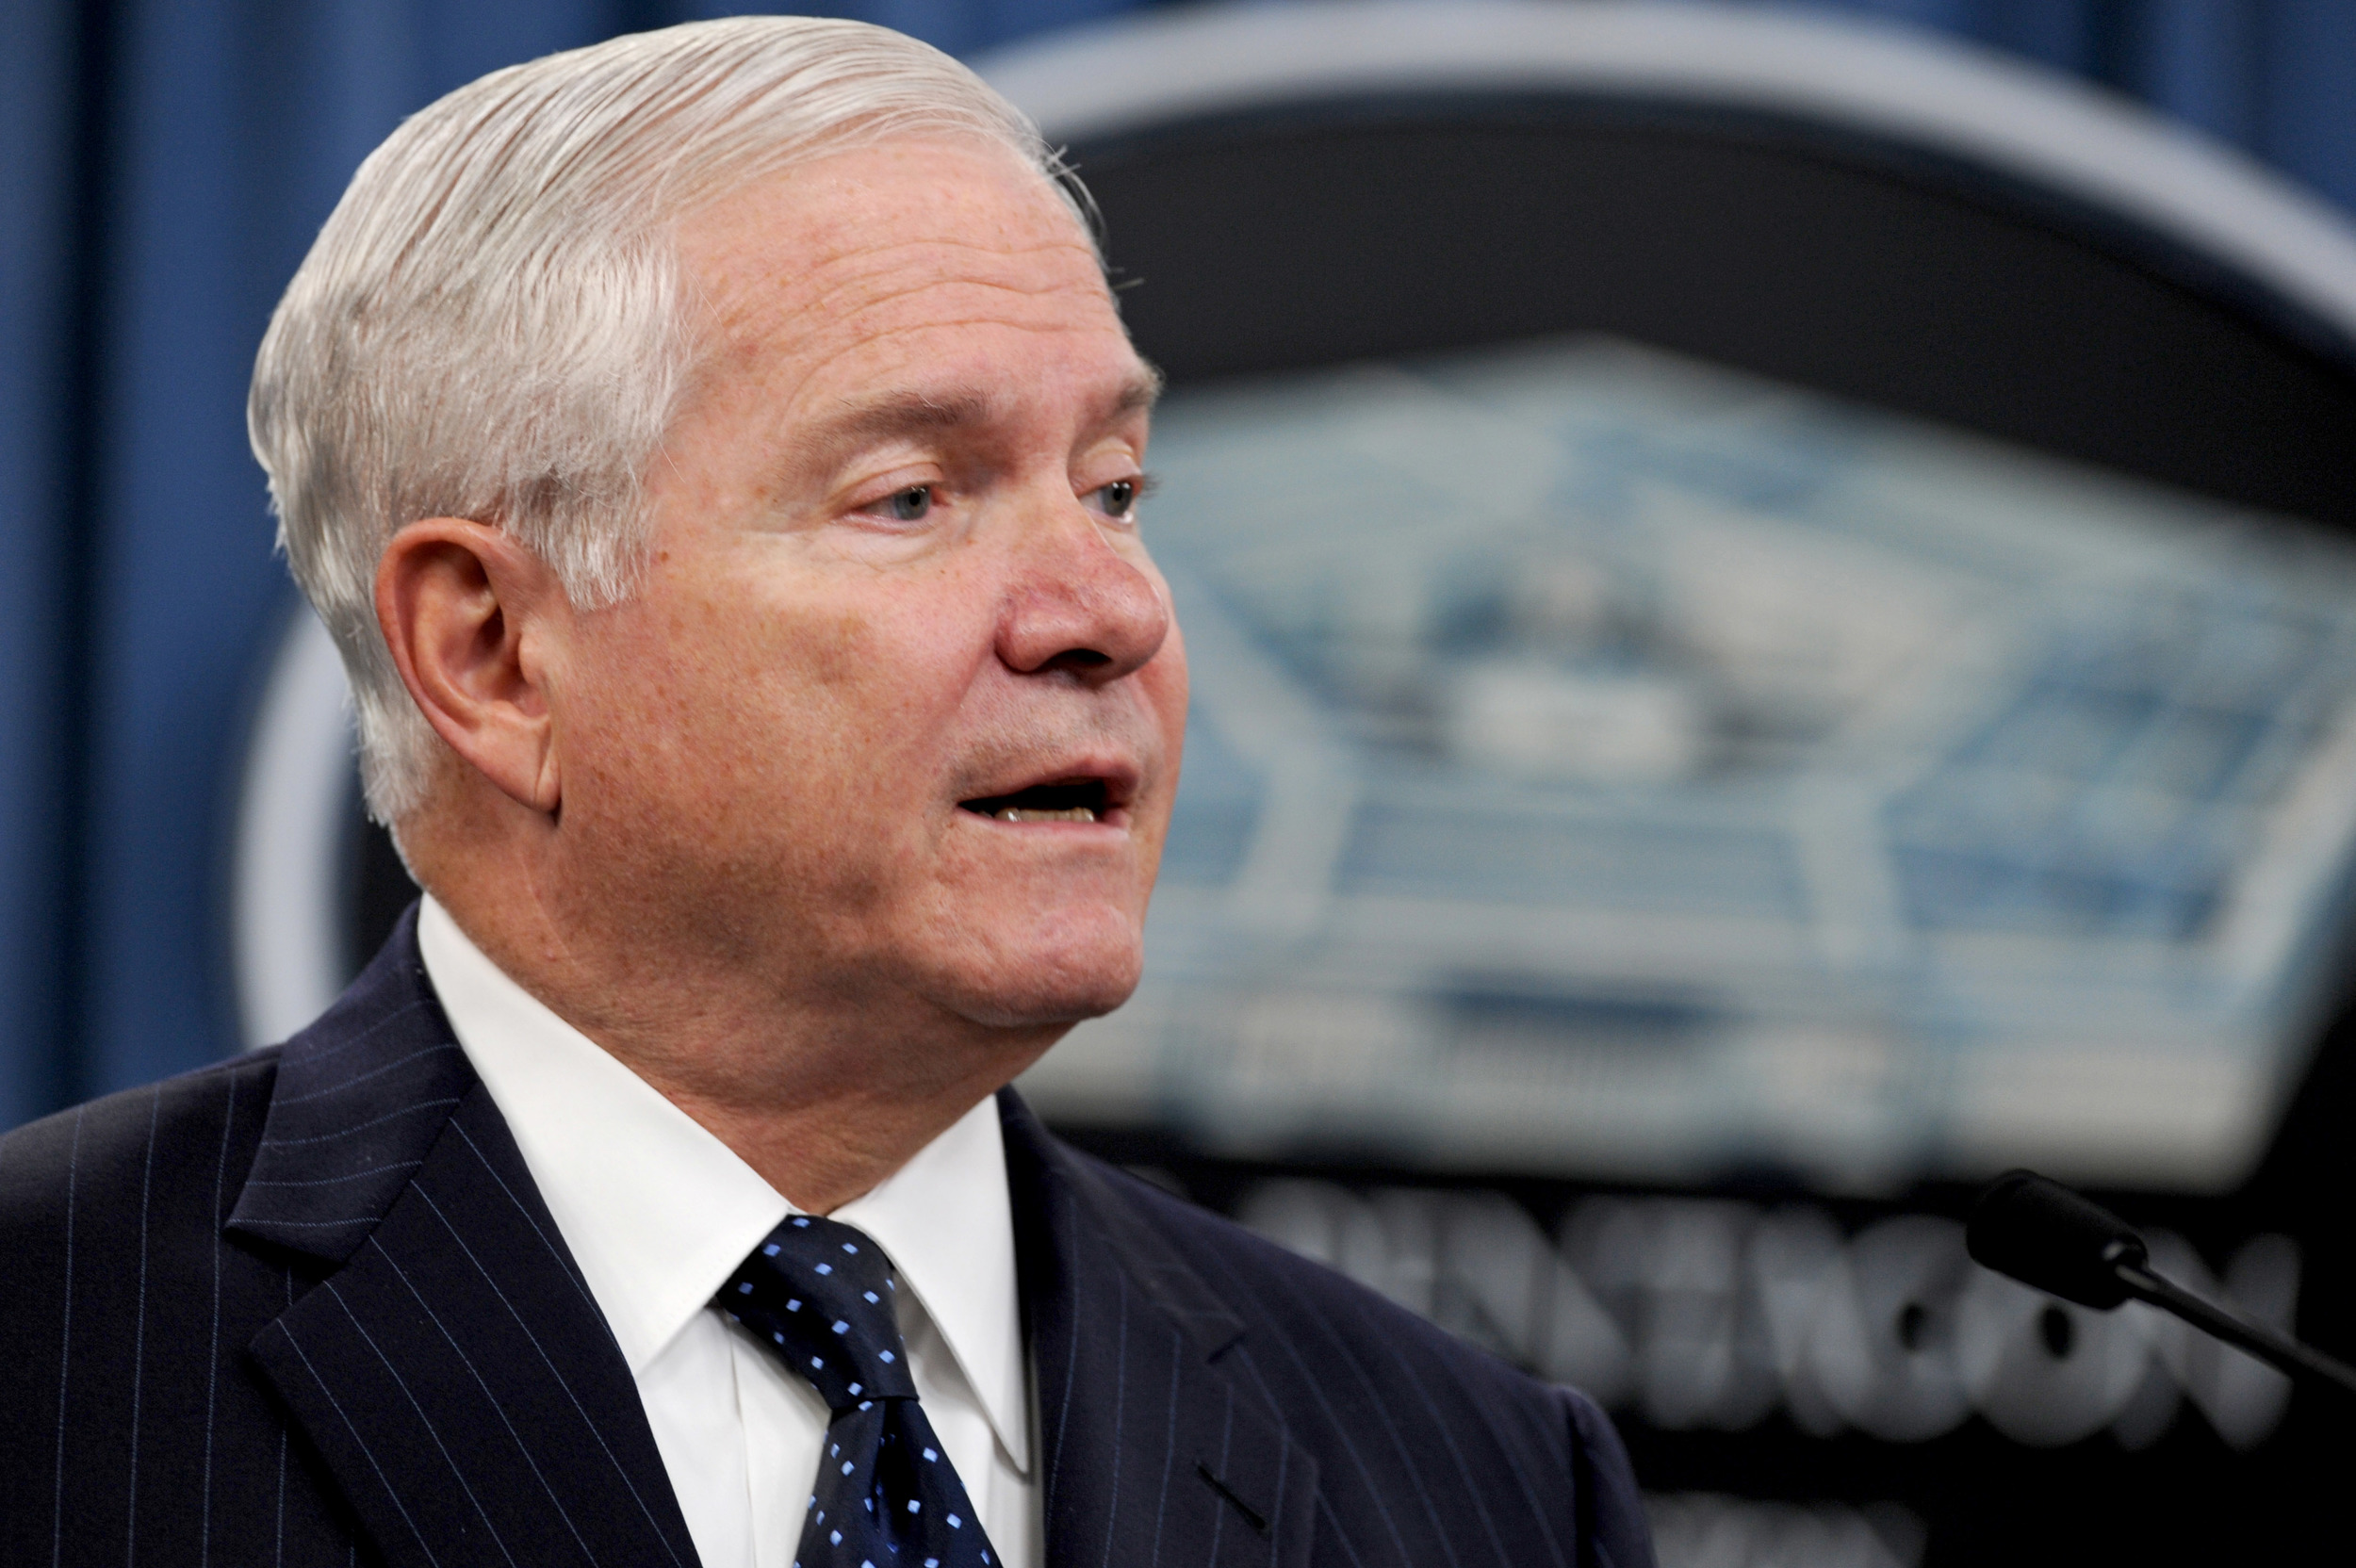 """Secretary of Defense Robert Gates: """"The Active Components and Reserve Components are integrated as a total force based on the attributes of the particular component and individual competencies."""""""